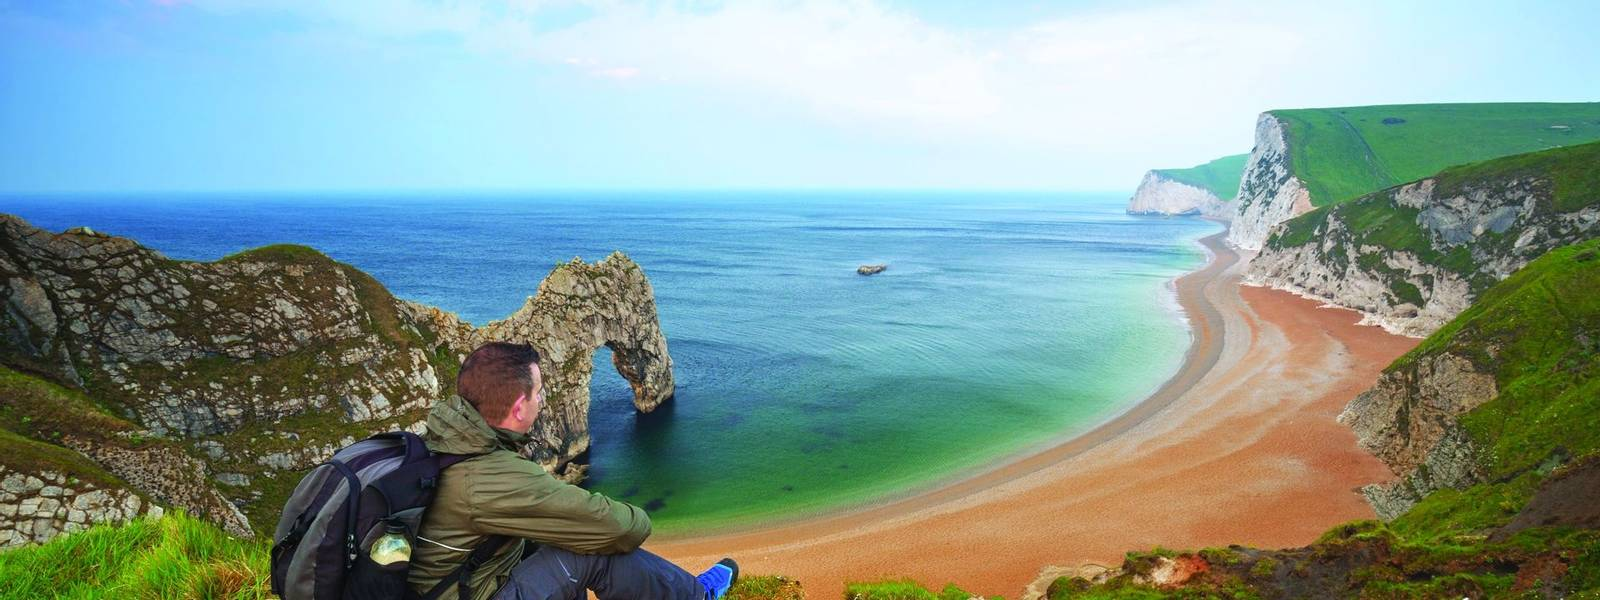 Man watching sunrise over Jurassic coast of Dorset, UK